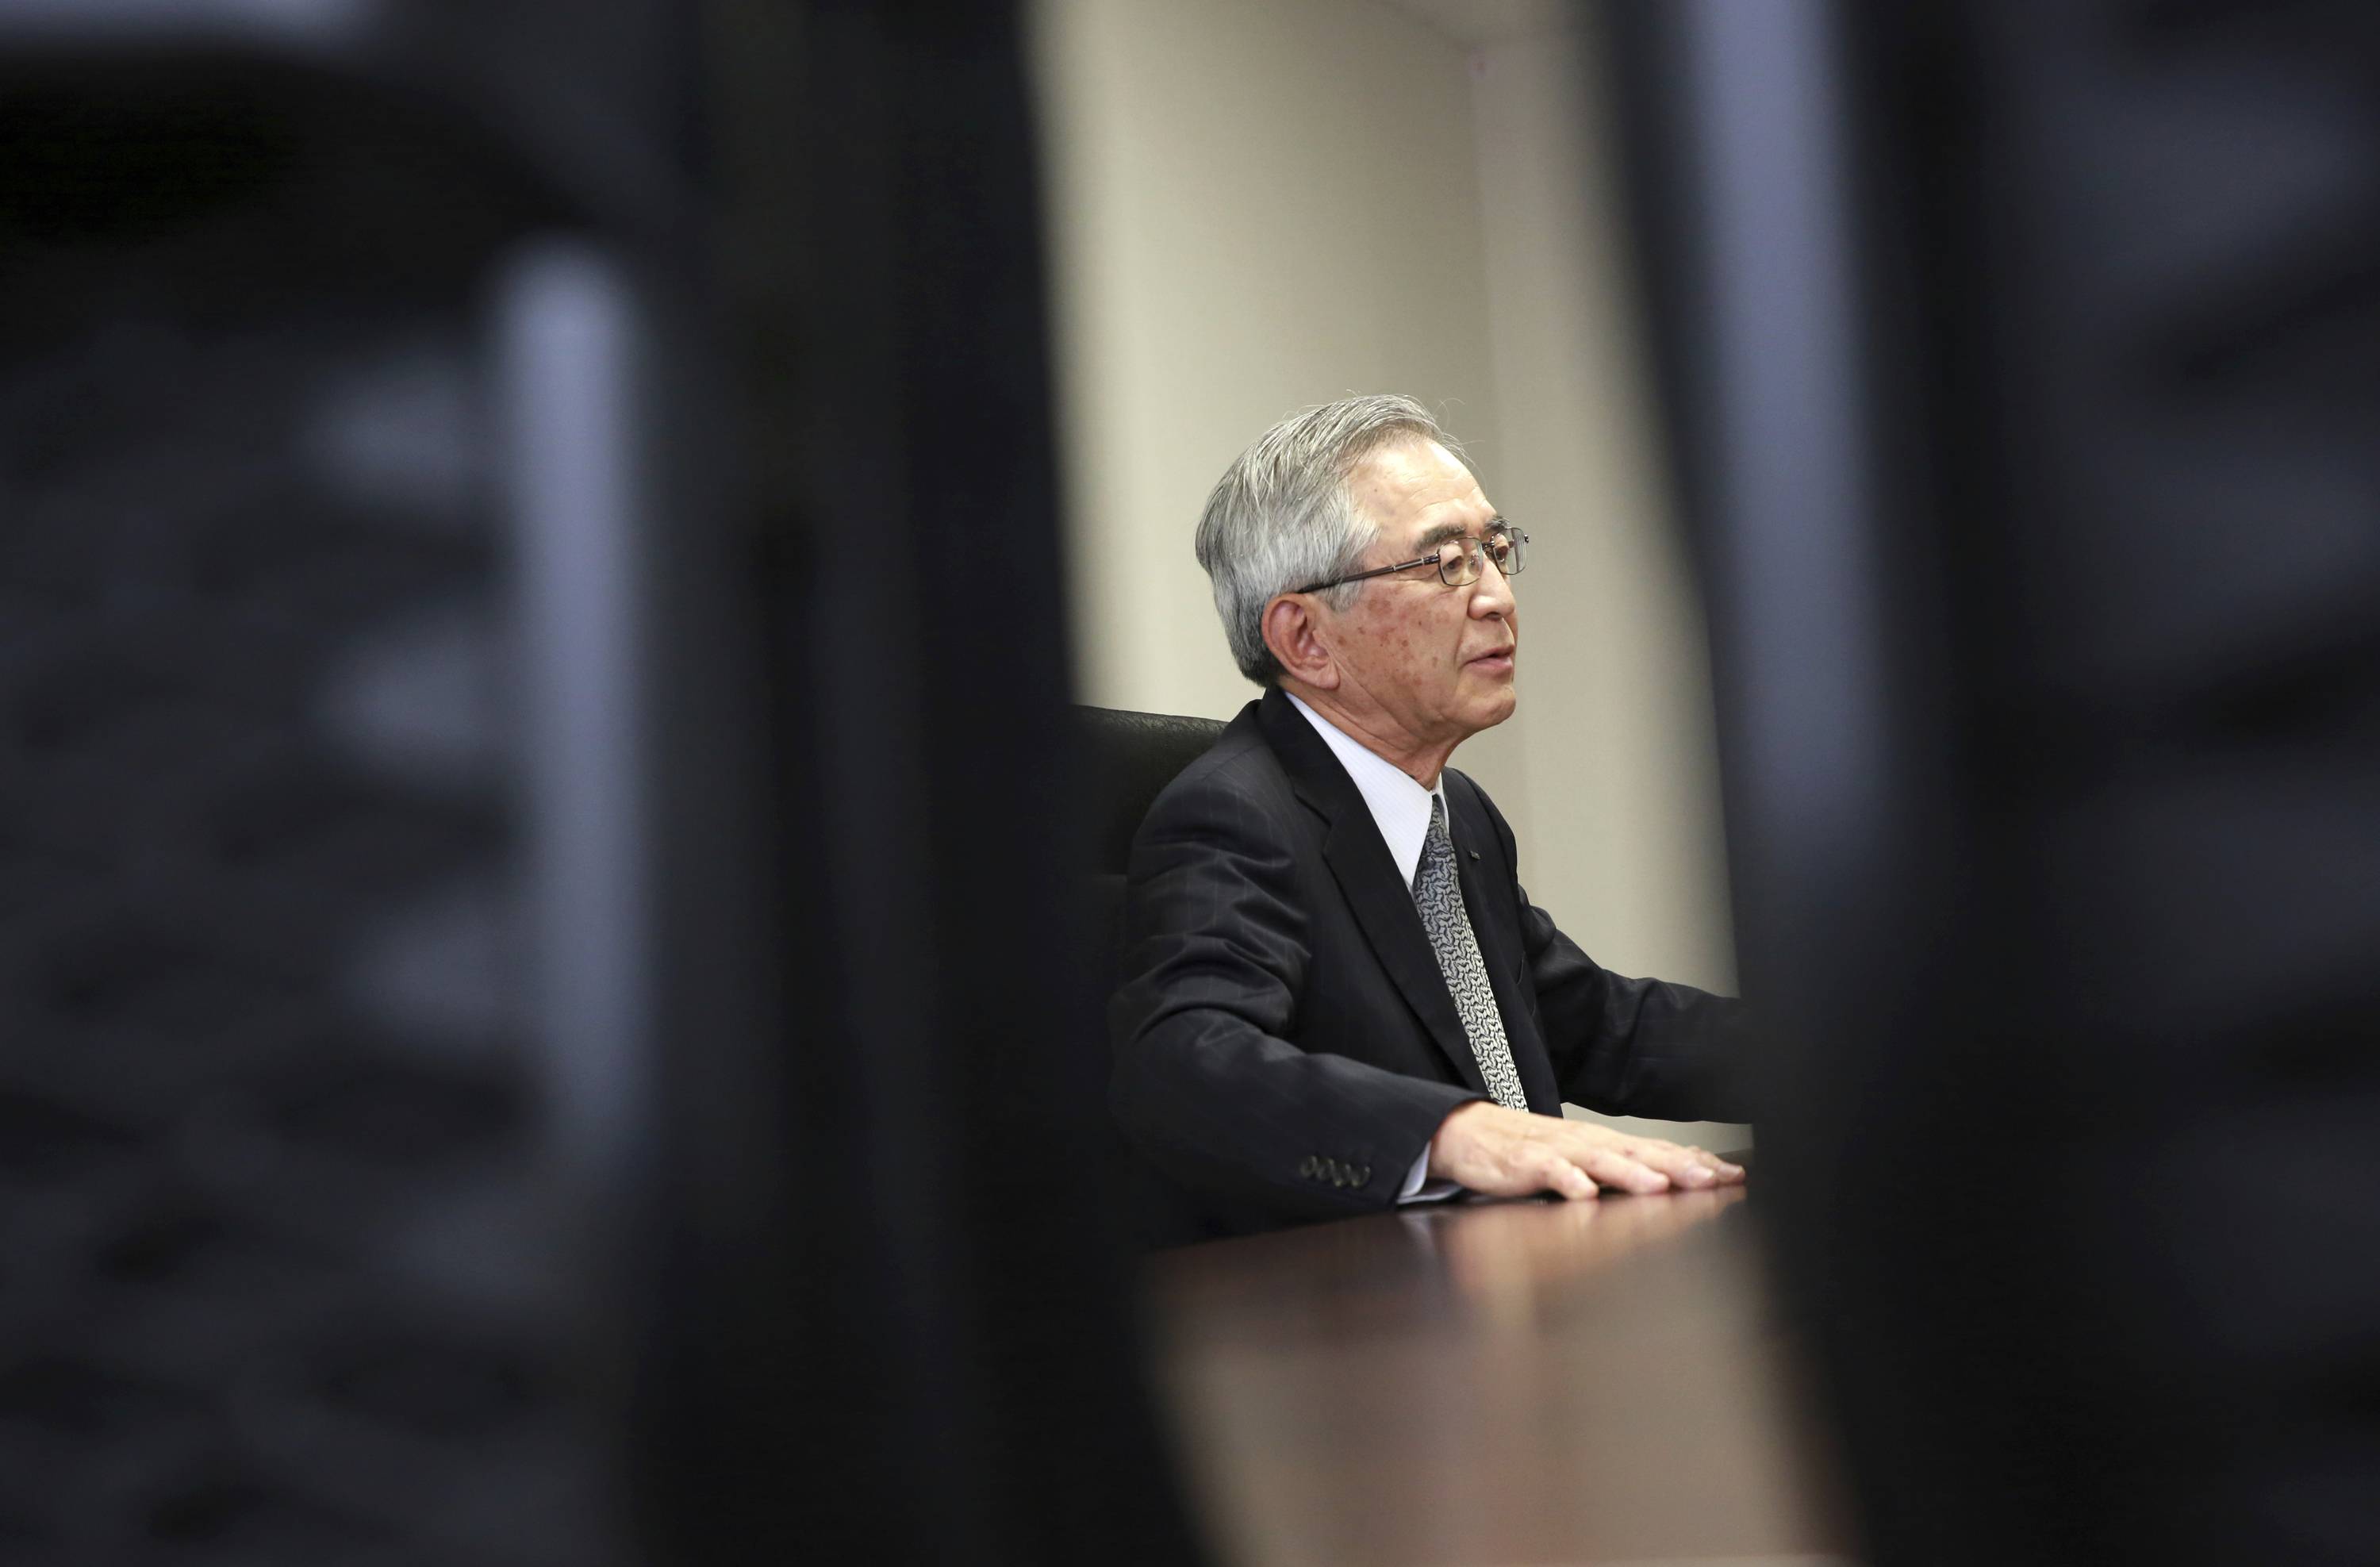 Japan Nuclear-1 Tokyo Electric Power Co.'s new Chairman Takashi Kawamura speaks during an interview at the TEPCO headquarters in Tokyo on Thursday, July 13, 2017. Kawamura said the utility needs to stop dragging its feet on plans to dump massive amounts of treated but contaminated water into the sea and make more money if it's ever going to succeed in cleaning up the mess left by meltdowns more than six years ago at the tsunami-hit Fukushima nuclear power plant. (AP Photo/Eugene Hoshiko)